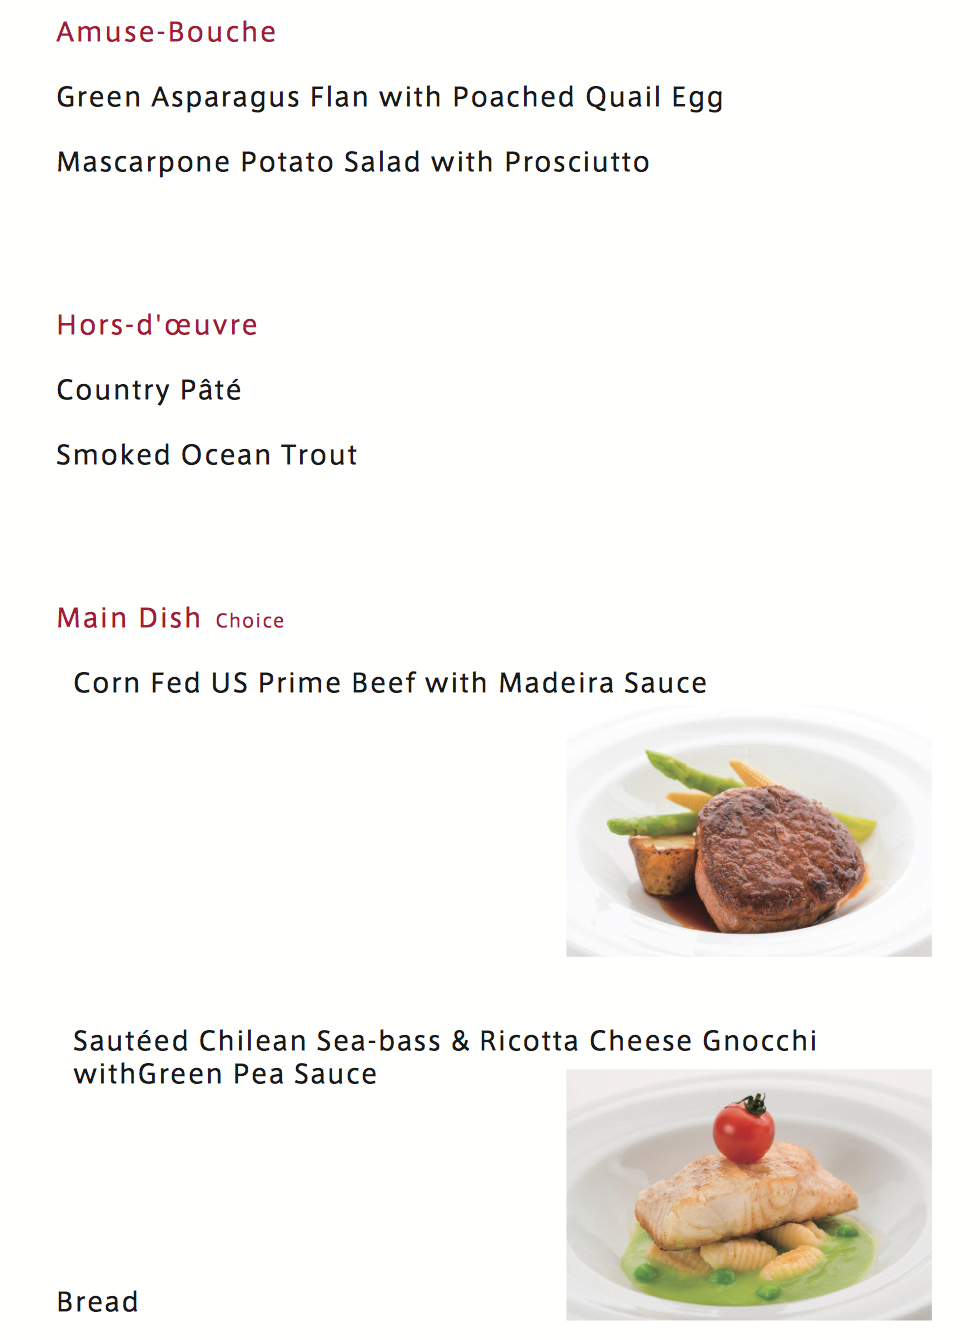 JAL Spring 2015 Business Class menu from New York, Chicago and Los Angeles